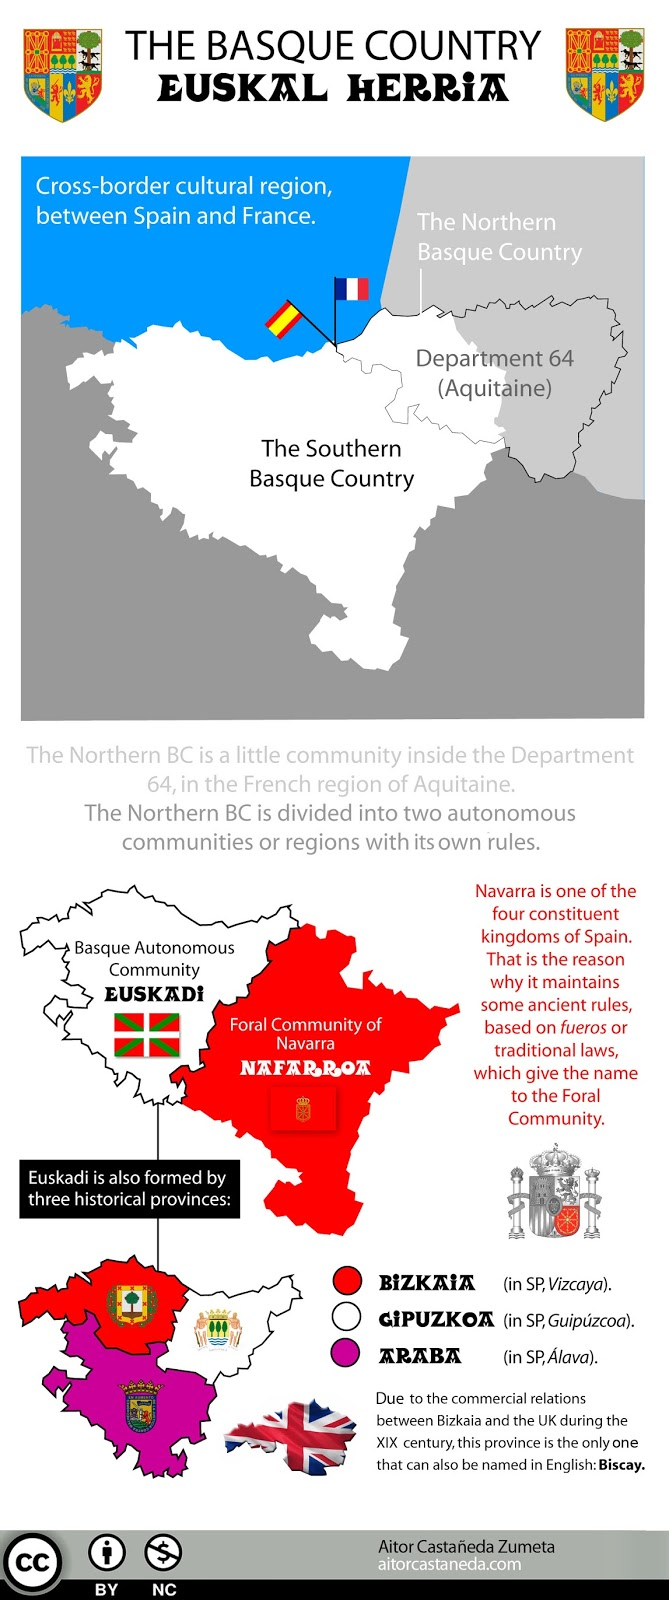 bilingualism in the basque country spain Basque (/ b æ s k, b ɑː s k / euskara [eus̺ˈkaɾa]) is a language spoken in the basque country, a region that straddles the westernmost pyrenees in adjacent parts of northern spain and southwestern francelinguistically, basque is unrelated to the other languages of europe and is a language isolate to any other known living language the basques are indigenous to, and primarily inhabit.